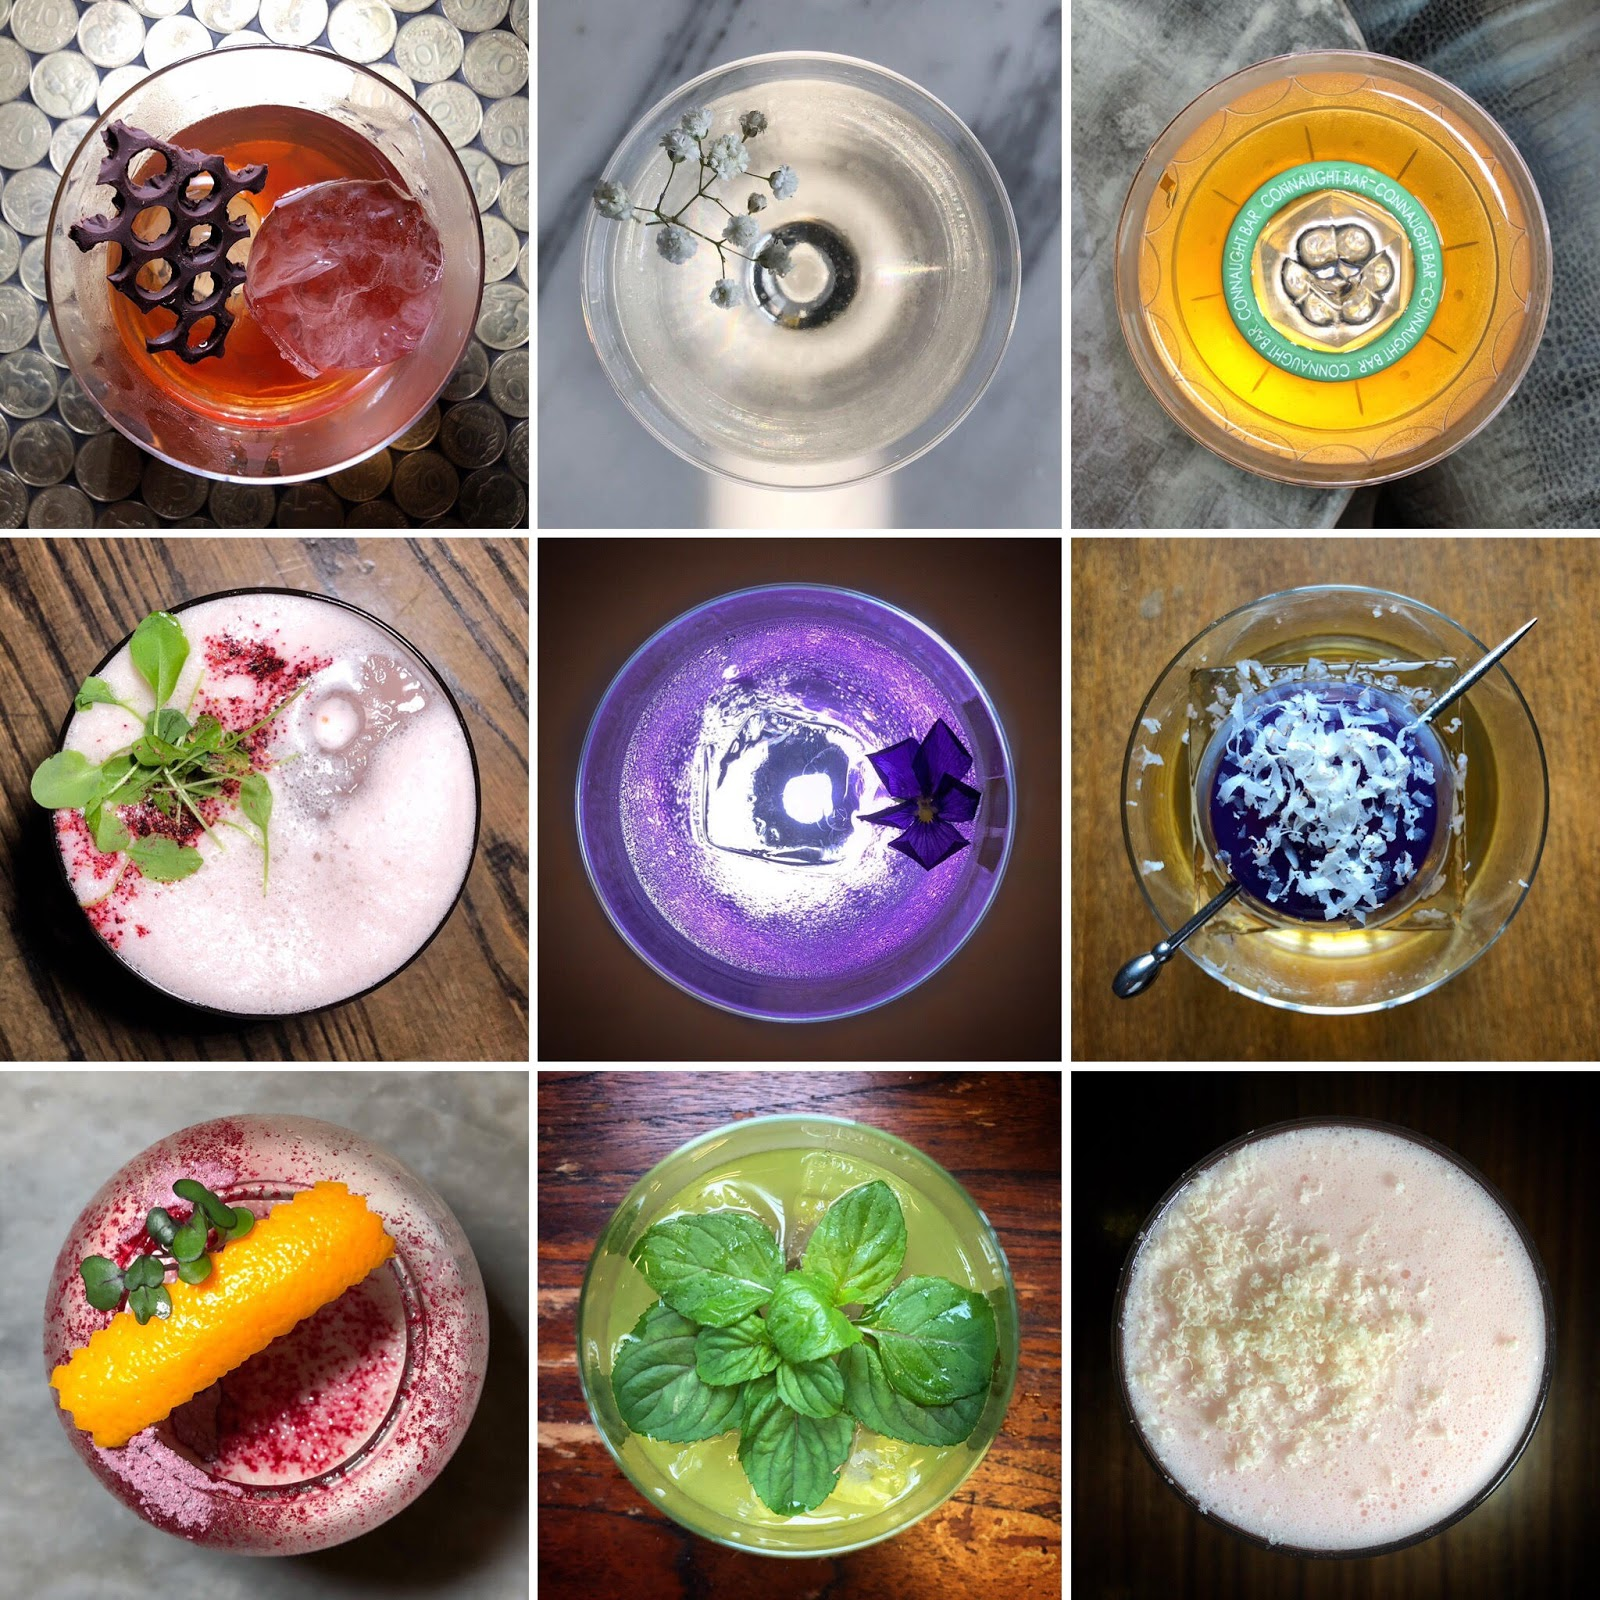 On Instagram, LeCocktailConnoisseur has developed its own creative line